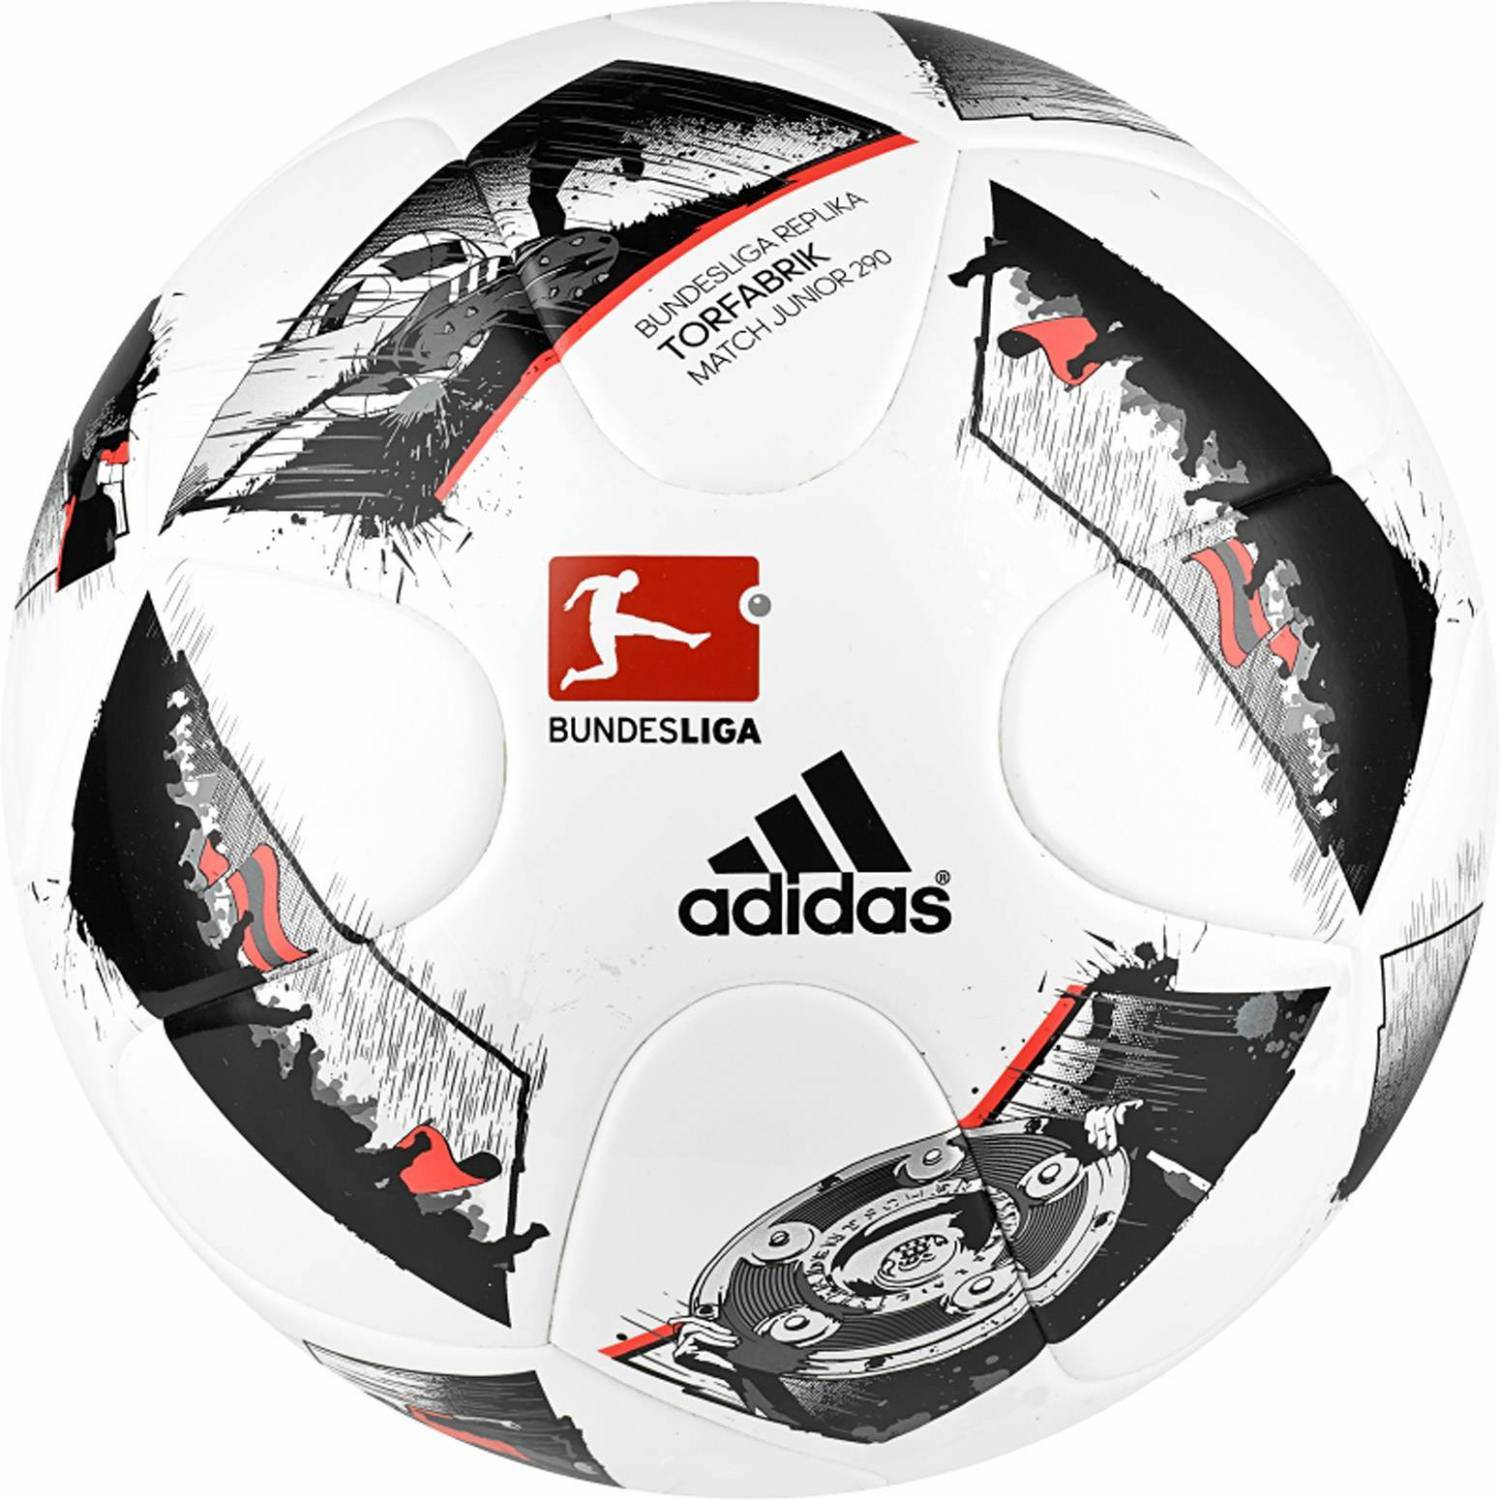 adidas Torfabrik 2016 Junior 290 Kinderfußball (Größe: 4, white/black/solar red)